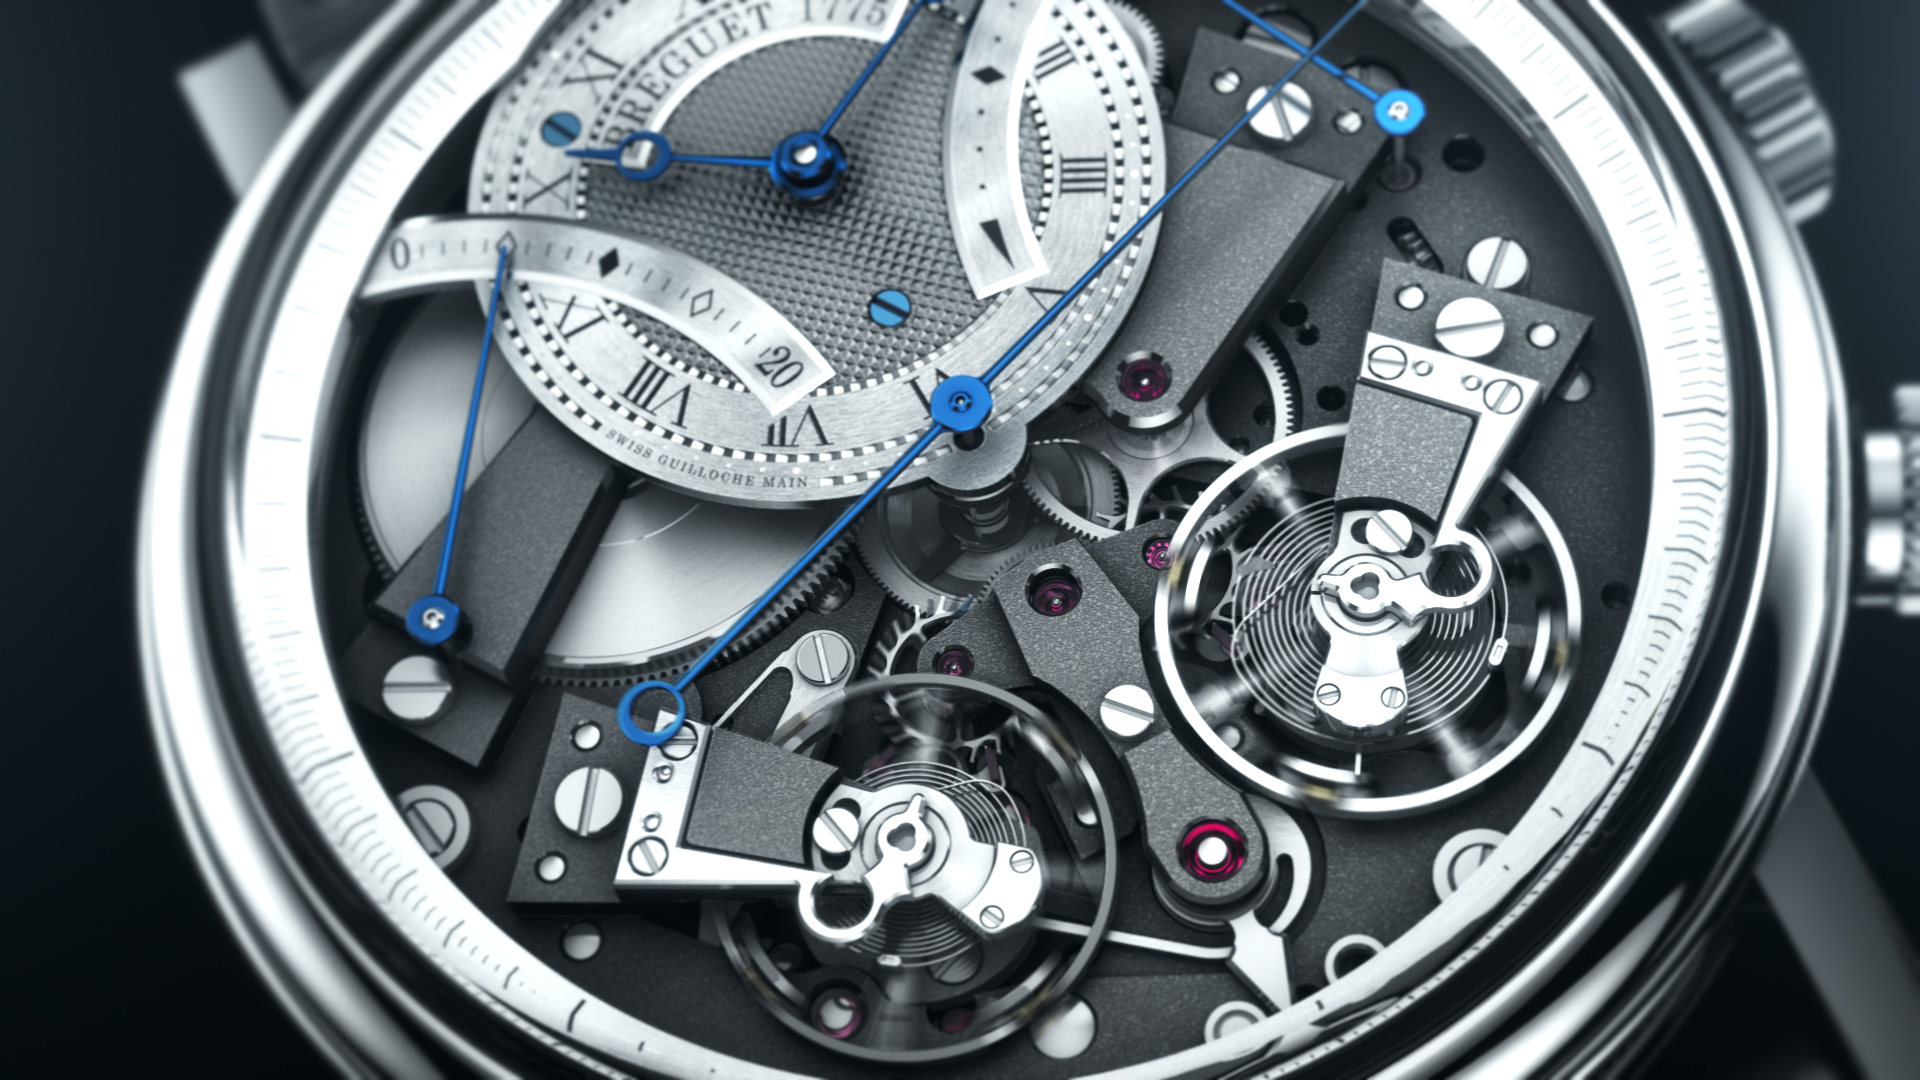 3DVISION NYVALIS 2015 BREGUET Tradition Chrono 06